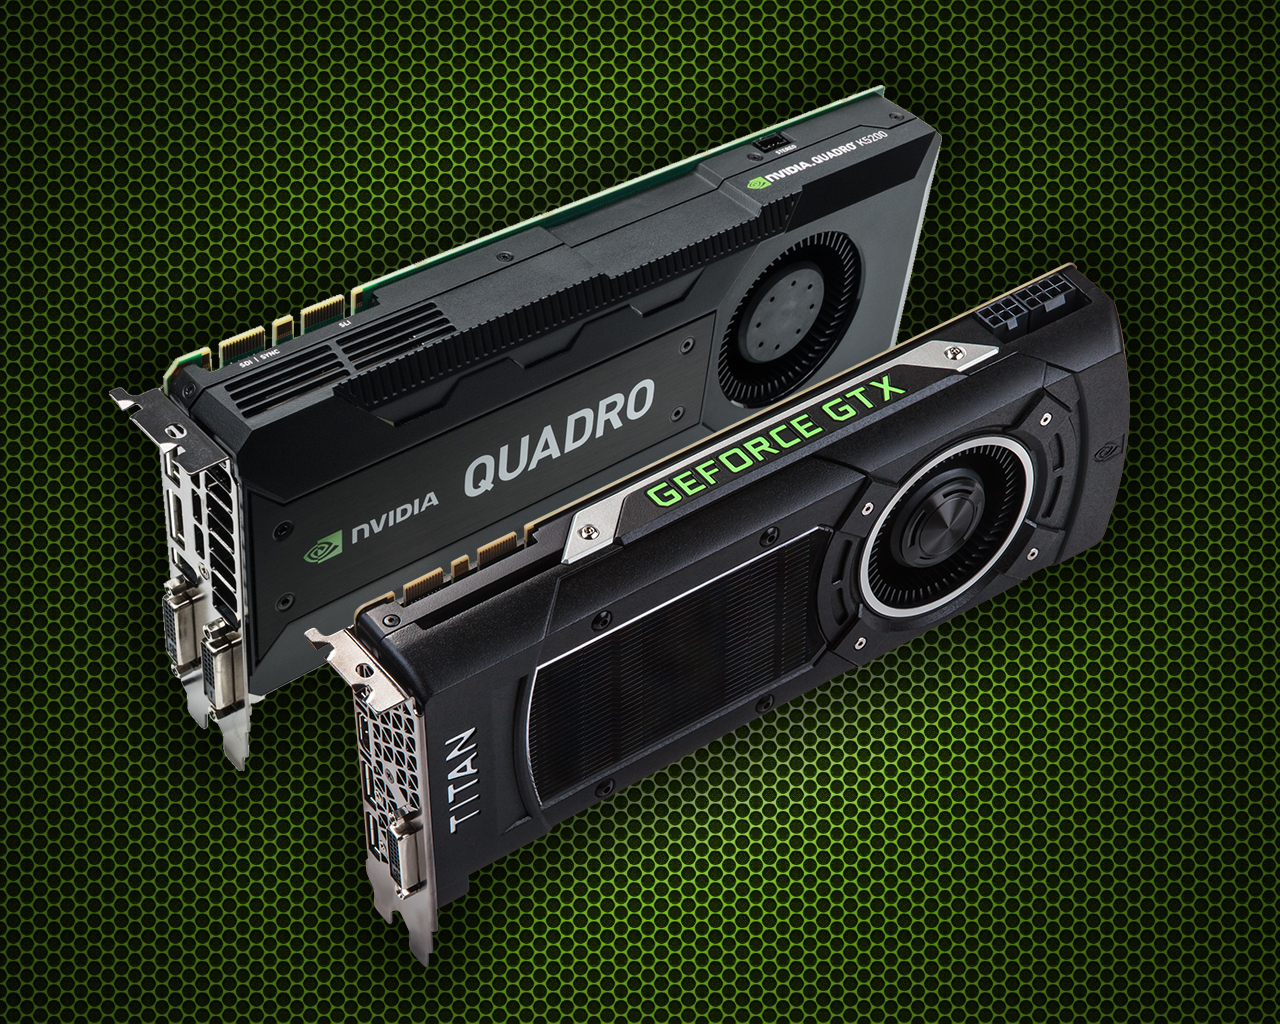 VIDIA Graphics Cards: Quadro vs. GeForce